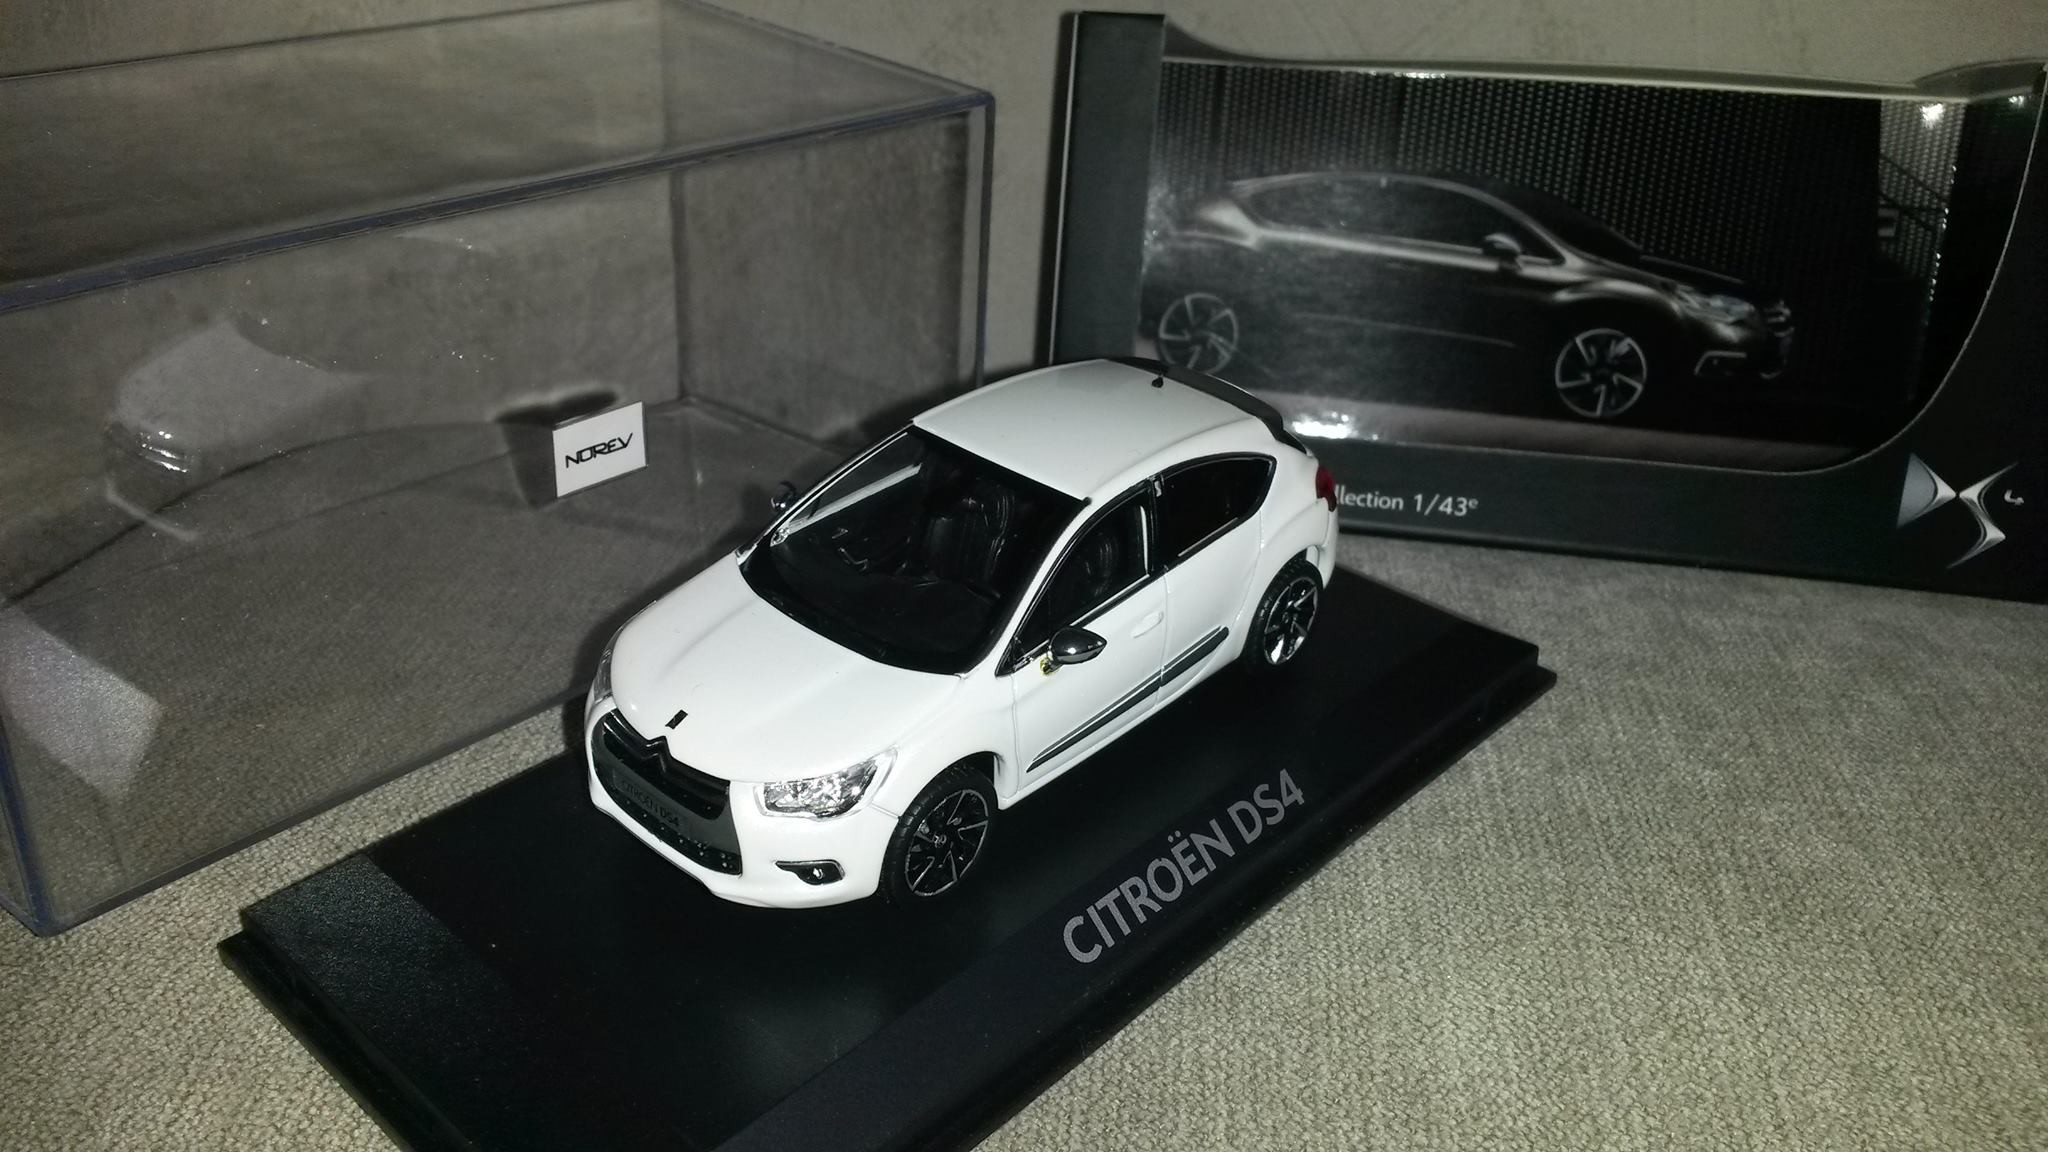 Ds4 blanche citroen ds4 occasion e hdi 115 so chic for Garage volkswagen salon de provence